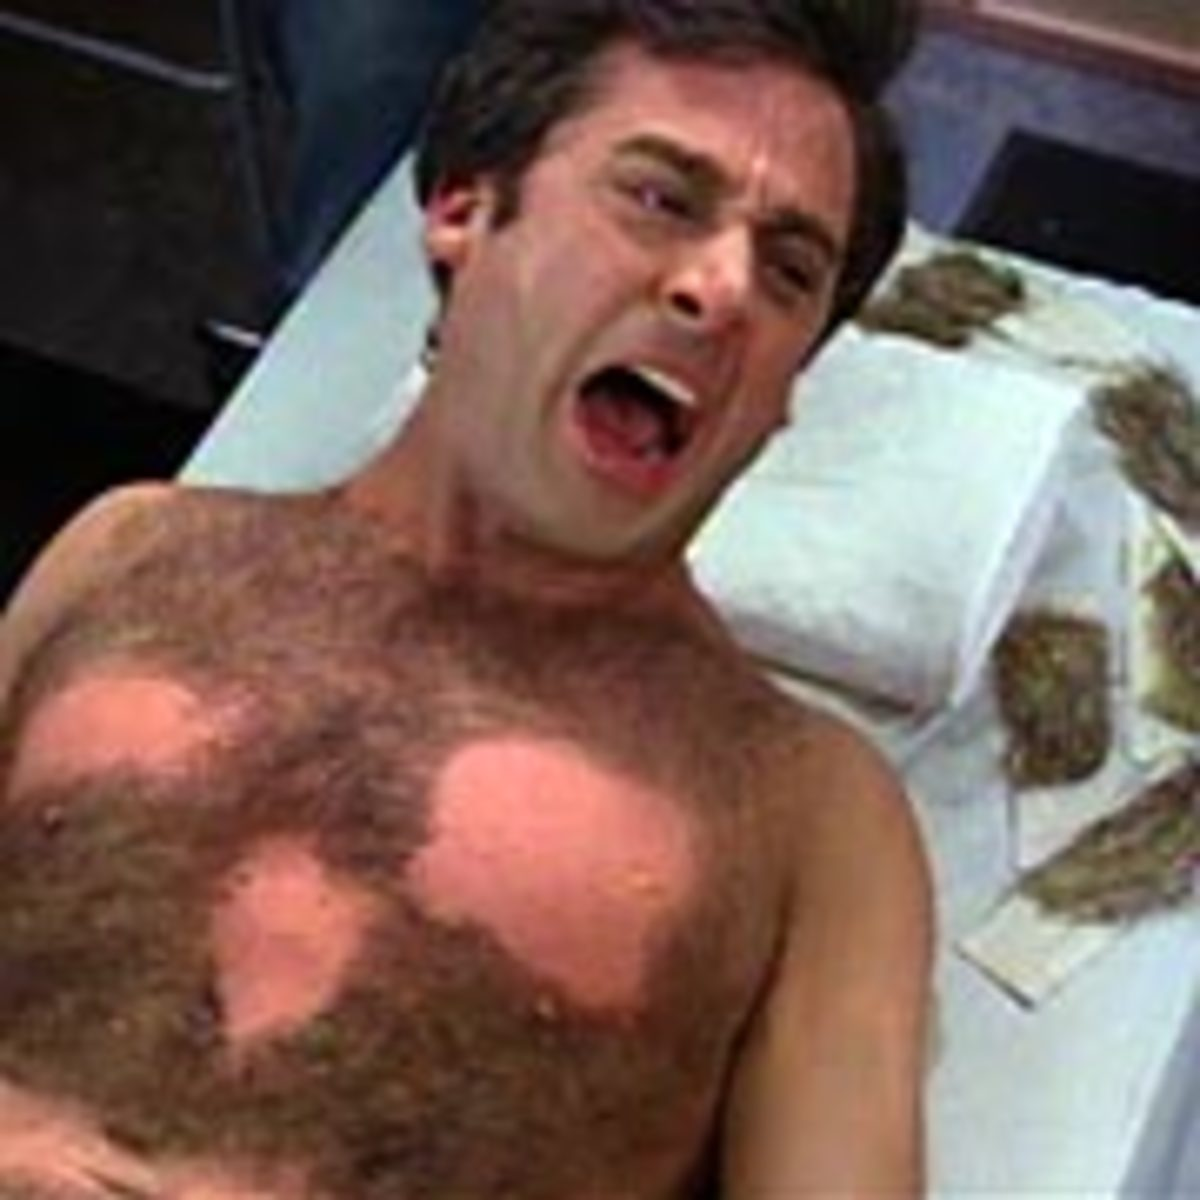 Getting Your Chest Waxed